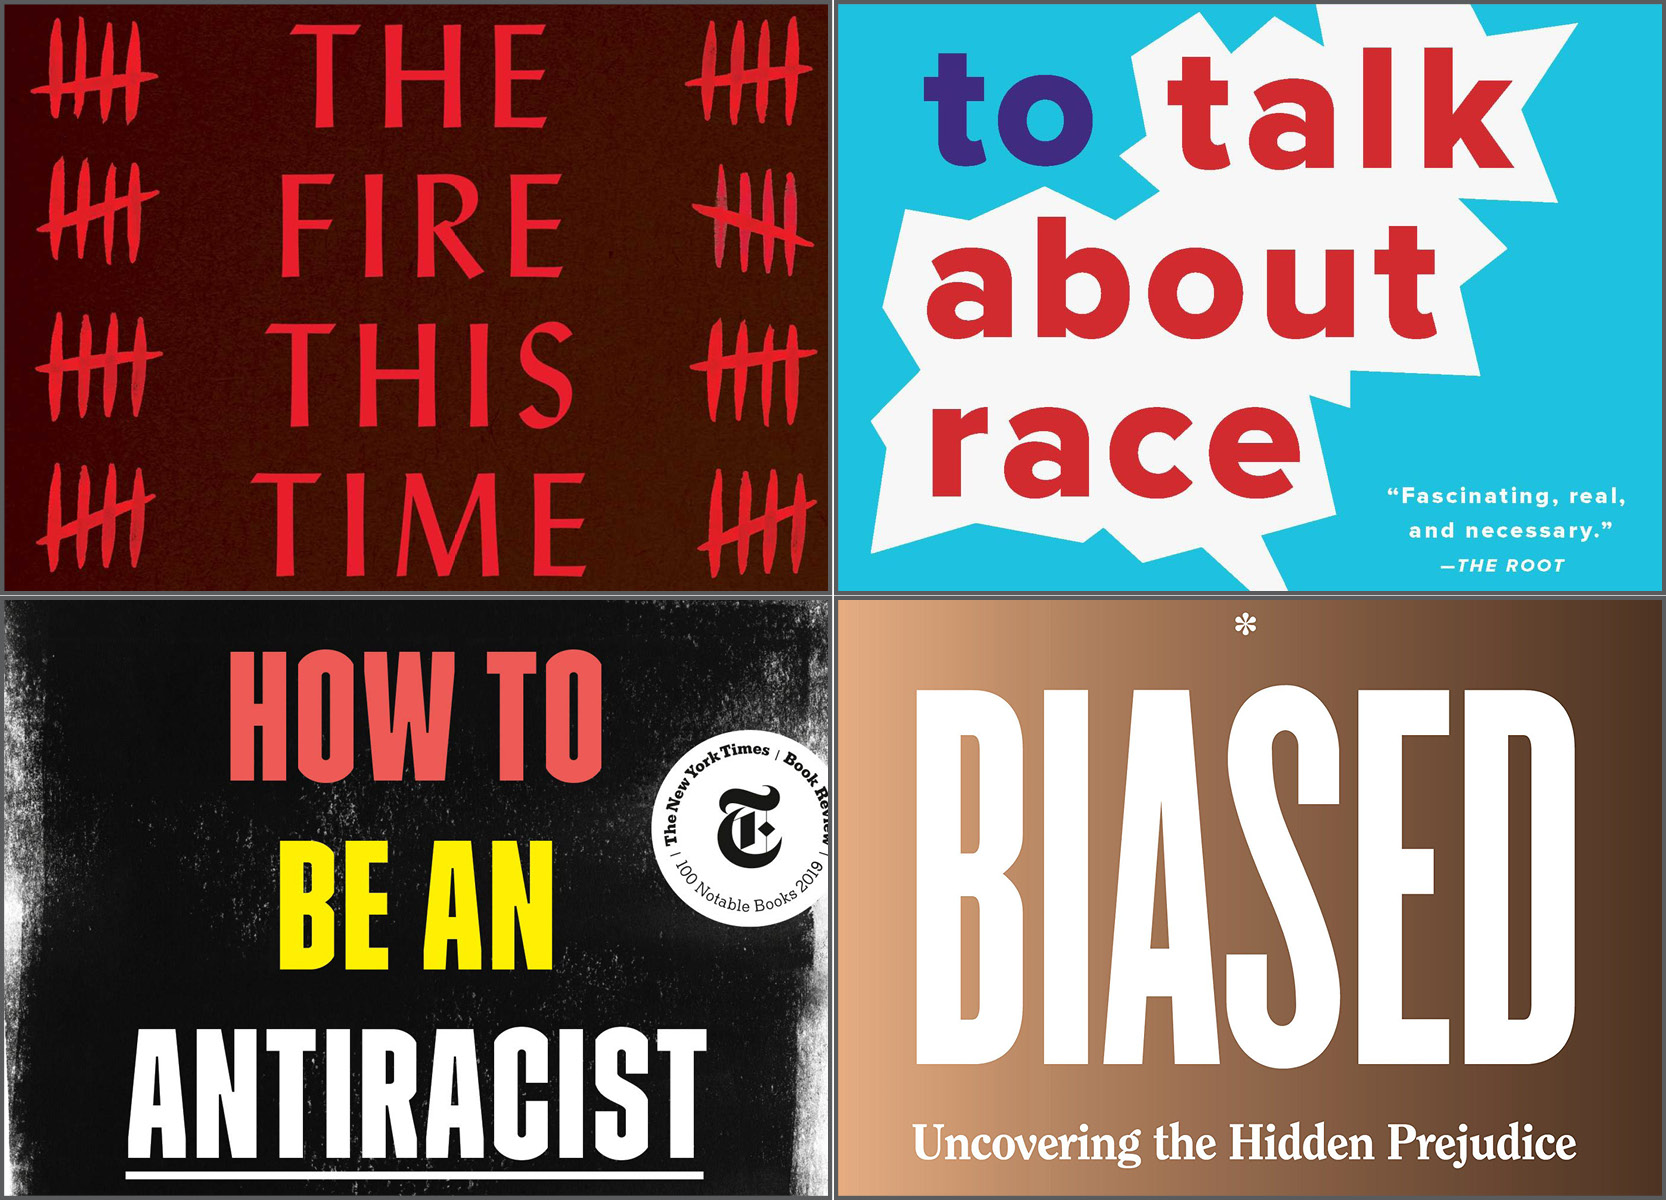 A reading list to better understand race, racism in America